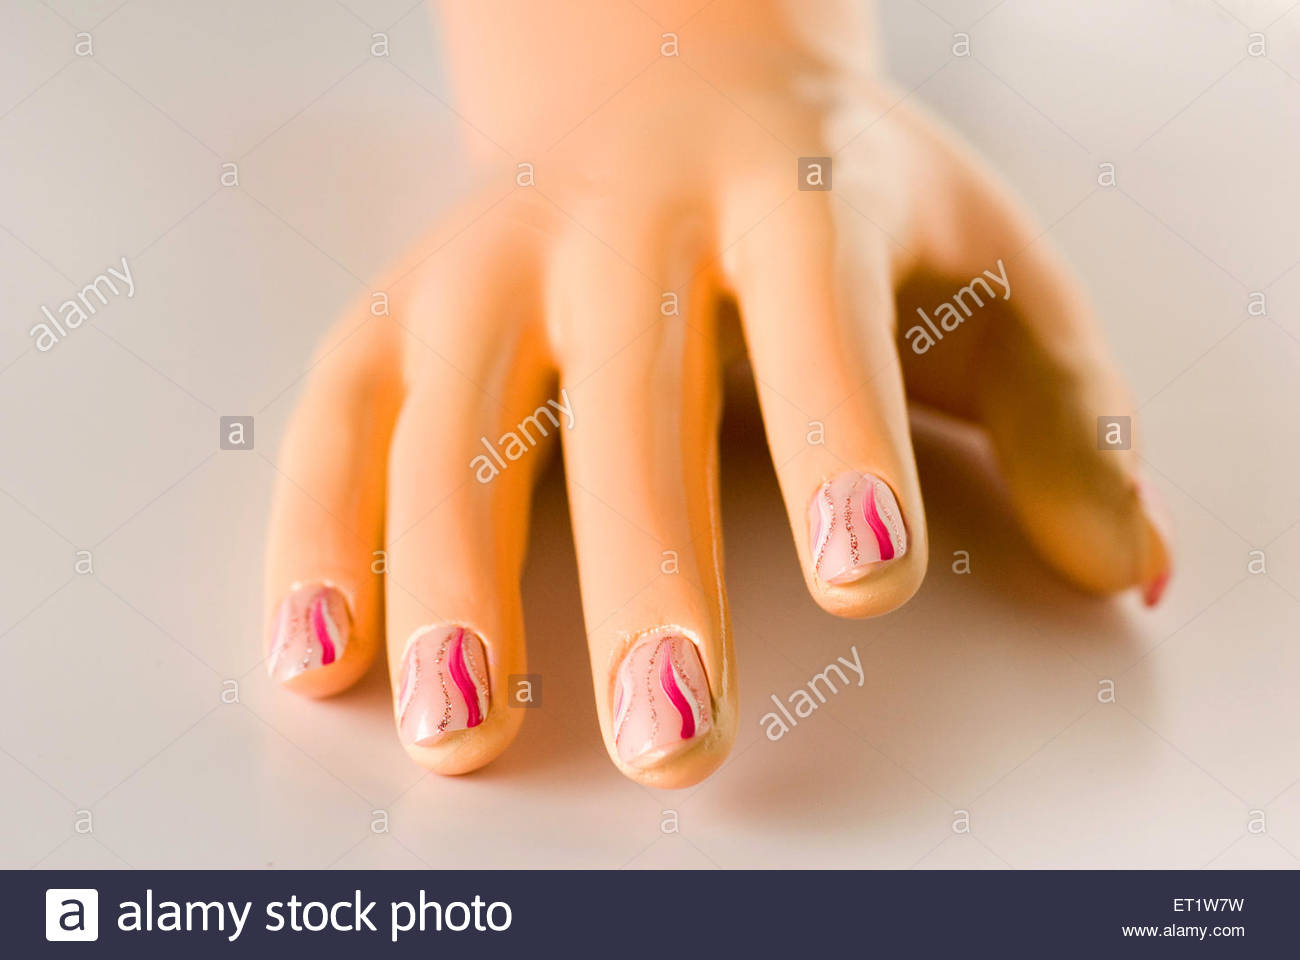 One mannequin hand showing acrylic painted design on nails on white ...